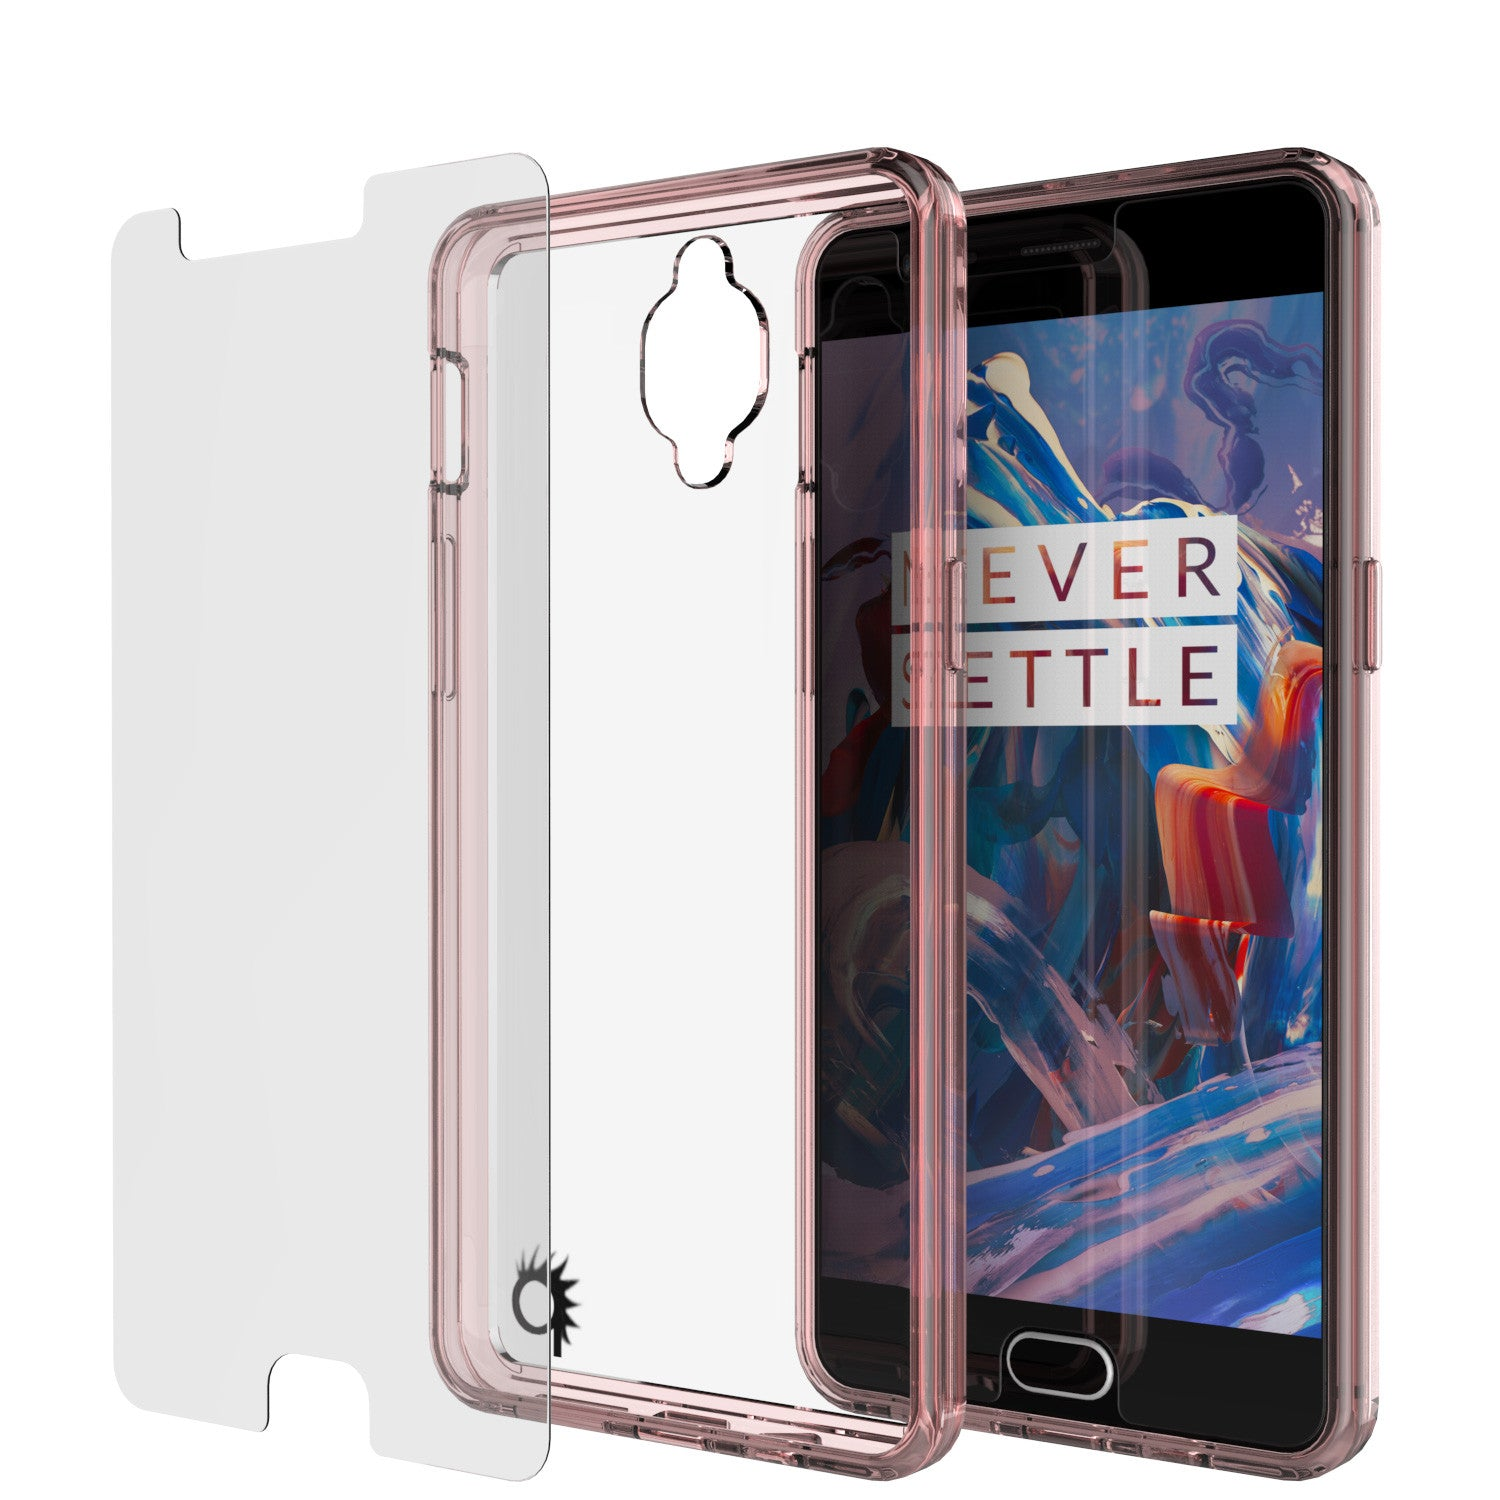 OnePlus 3 Case Punkcase® LUCID 2.0 Crystal Pink Series w/ SHIELD GLASS Lifetime Warranty Exchange